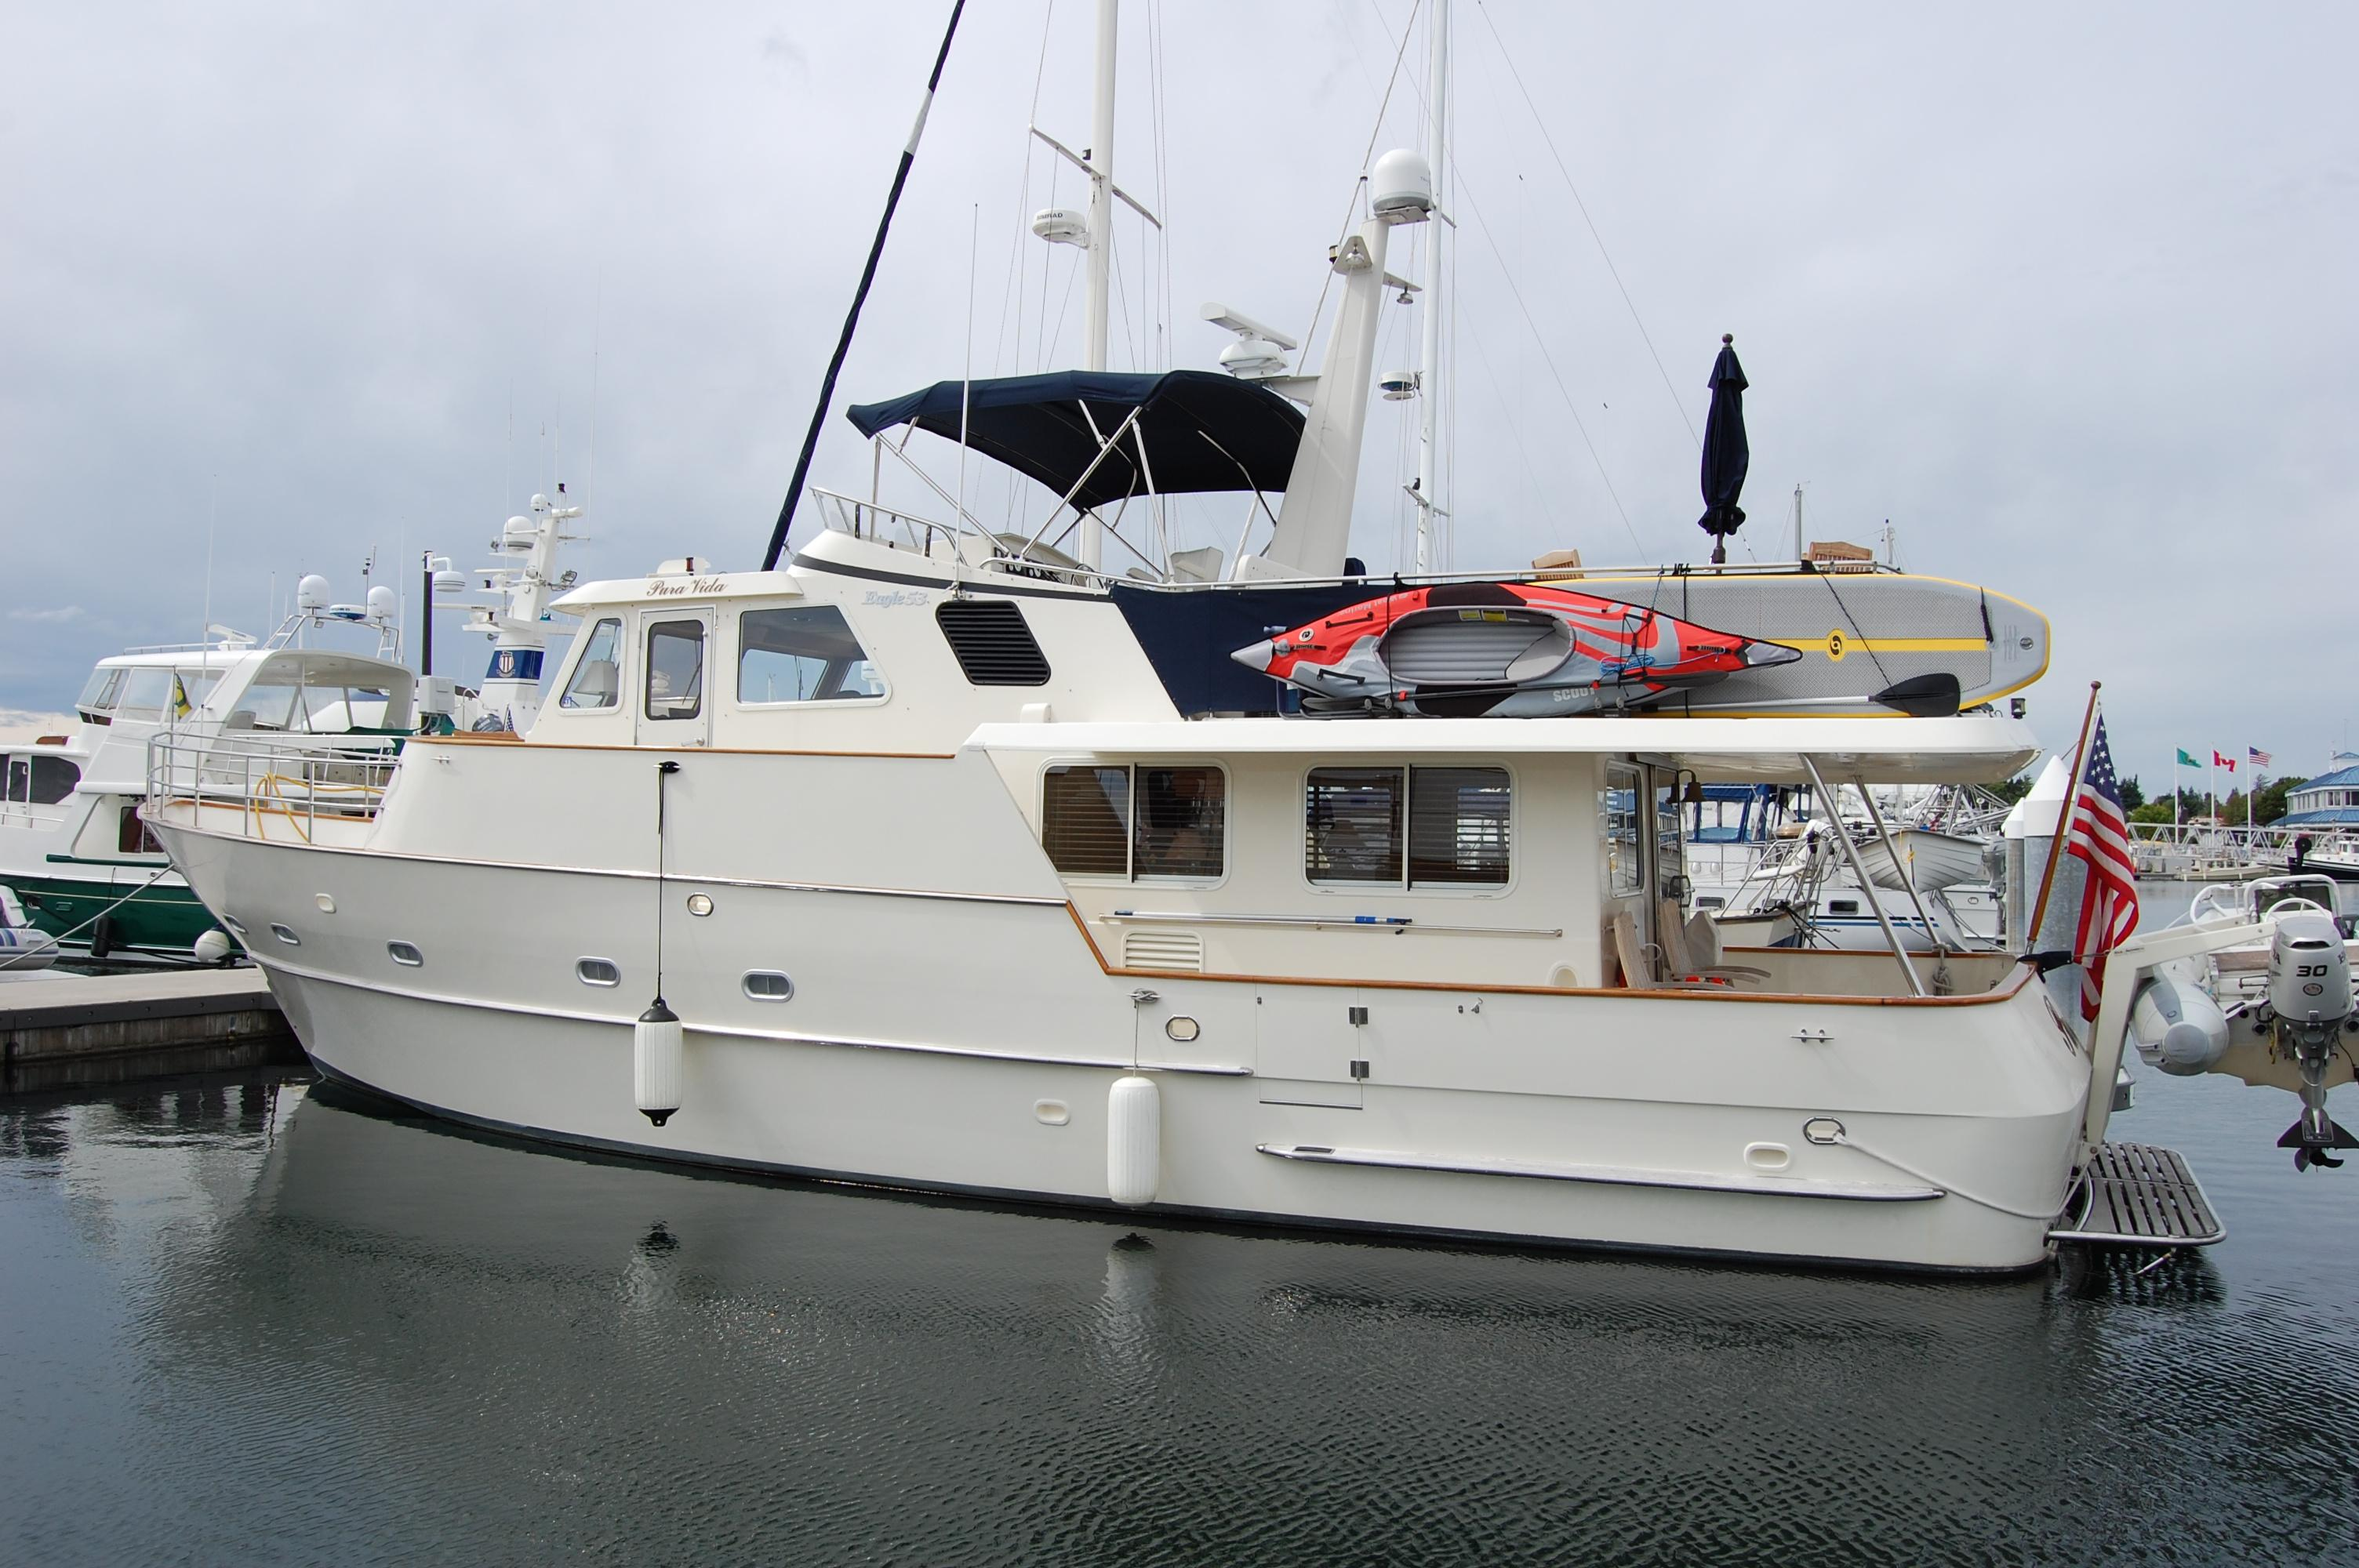 2002 Eagle Pilothouse Power Boat For Sale Wwwyachtworldcom